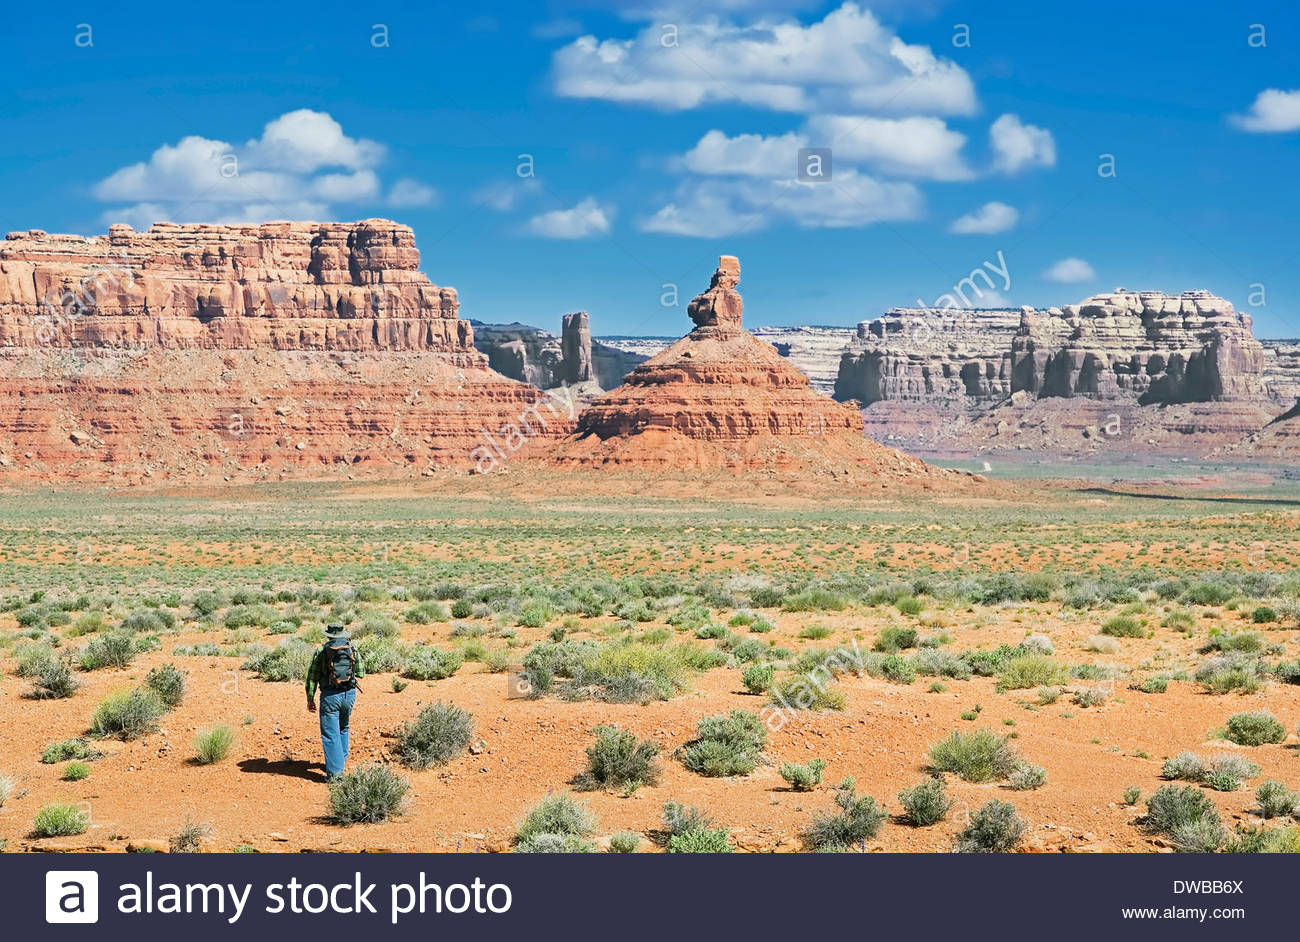 Trekker, Valley of the Gods, Utah, US - Stock Image